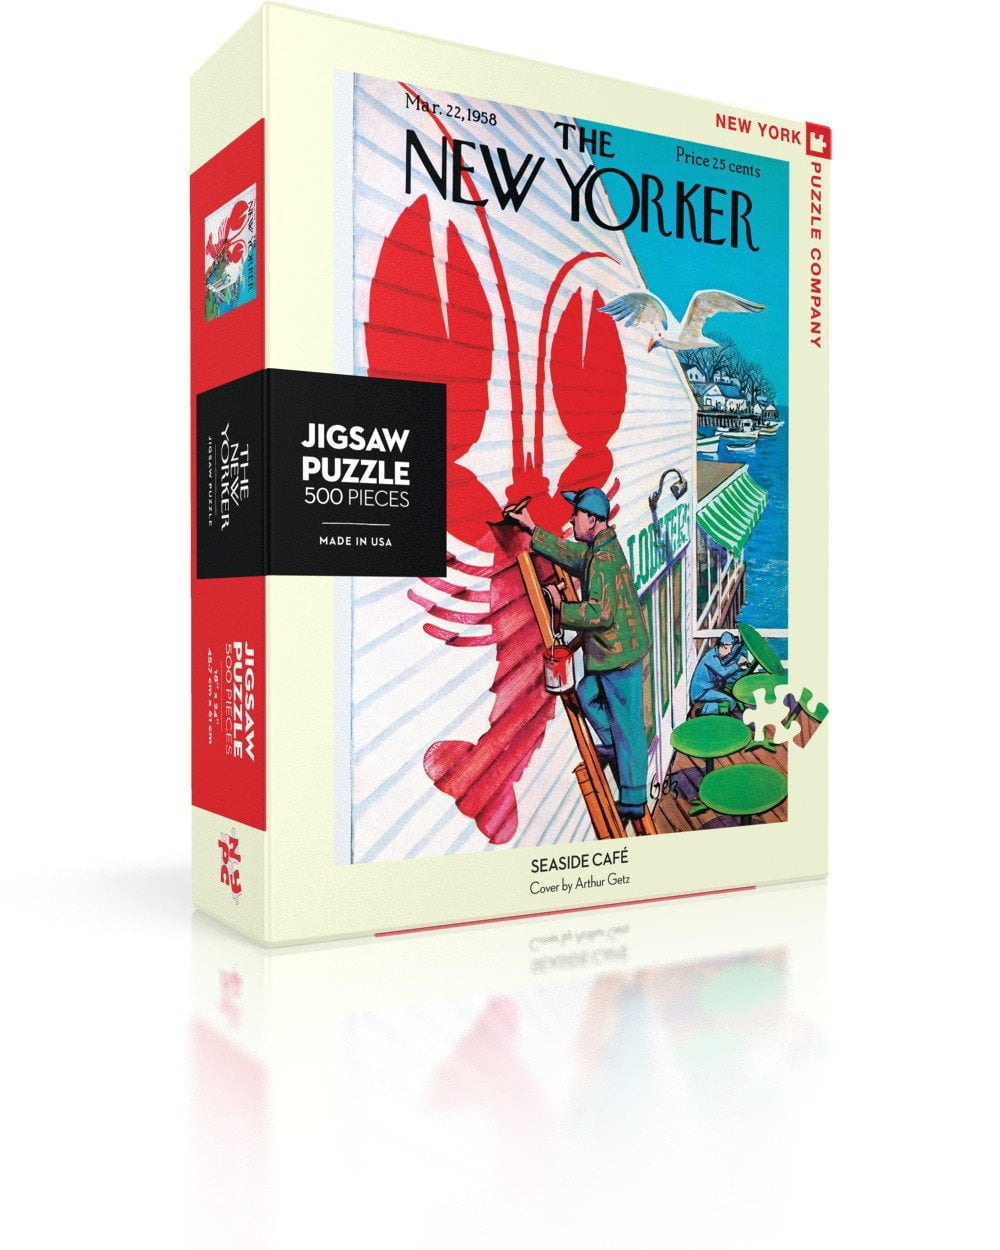 The New Yorker - Seaside Cafe 500 Piece Puzzle